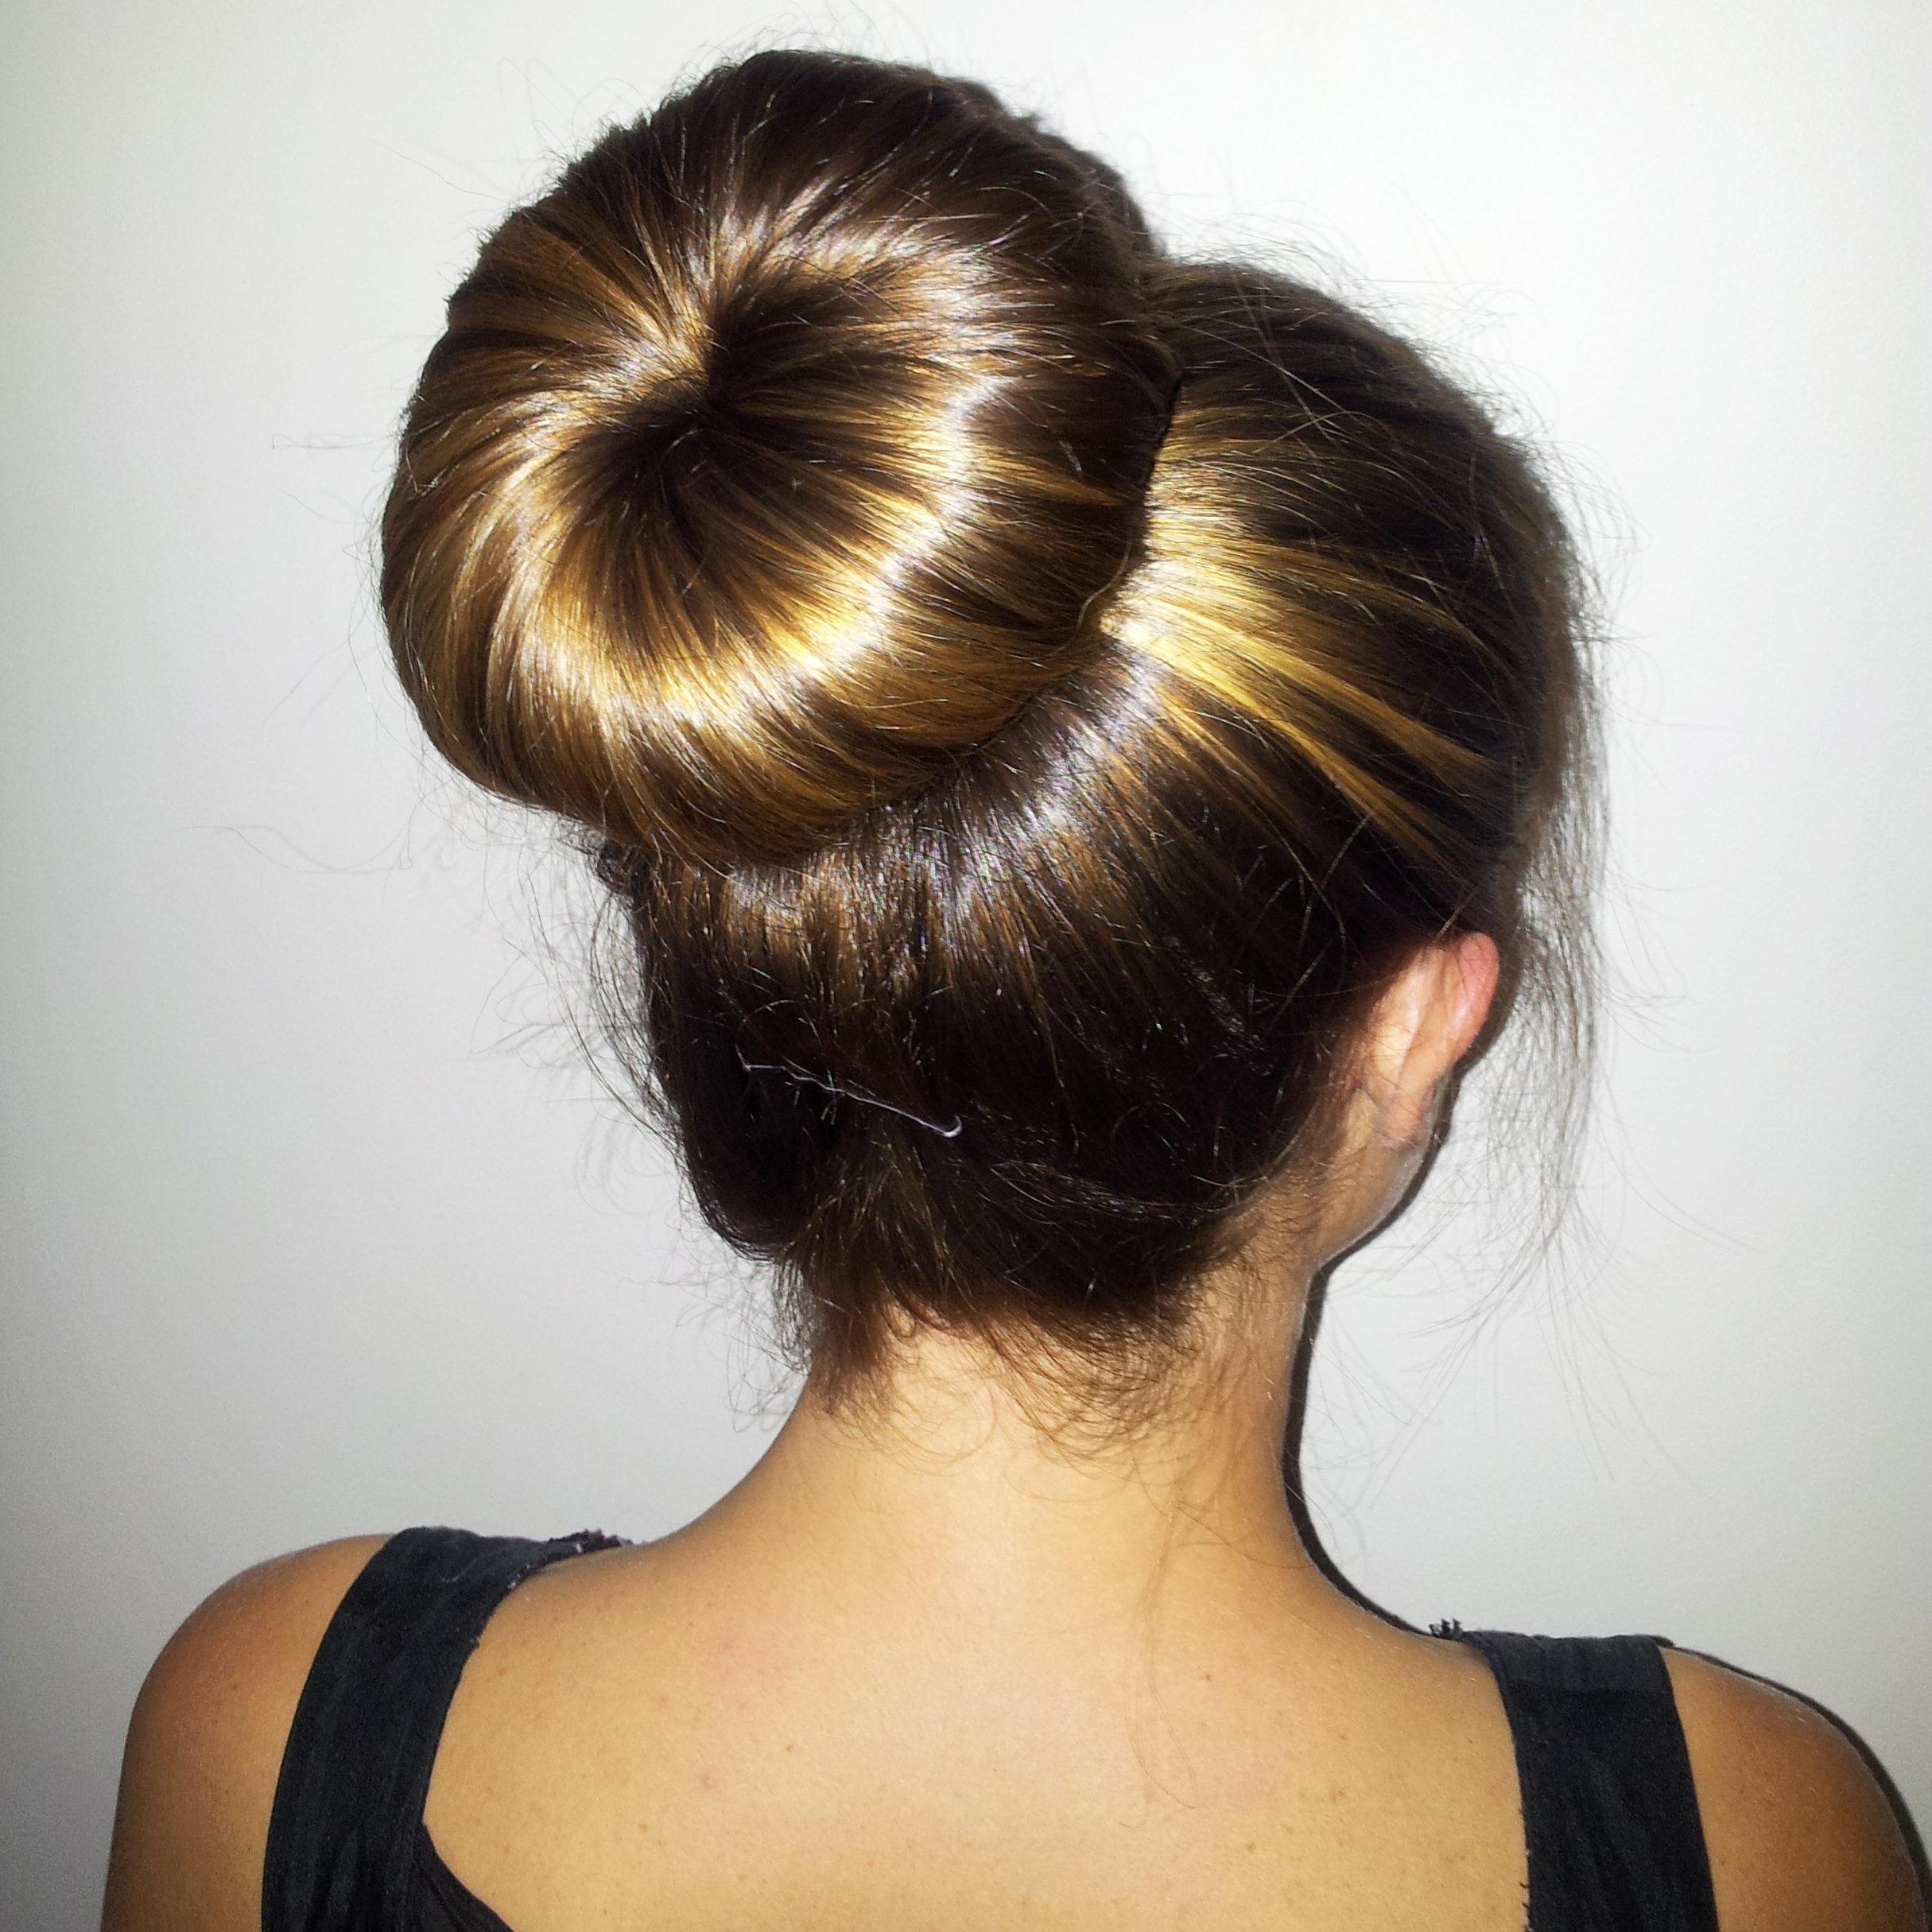 Big-Bun-Frisuren